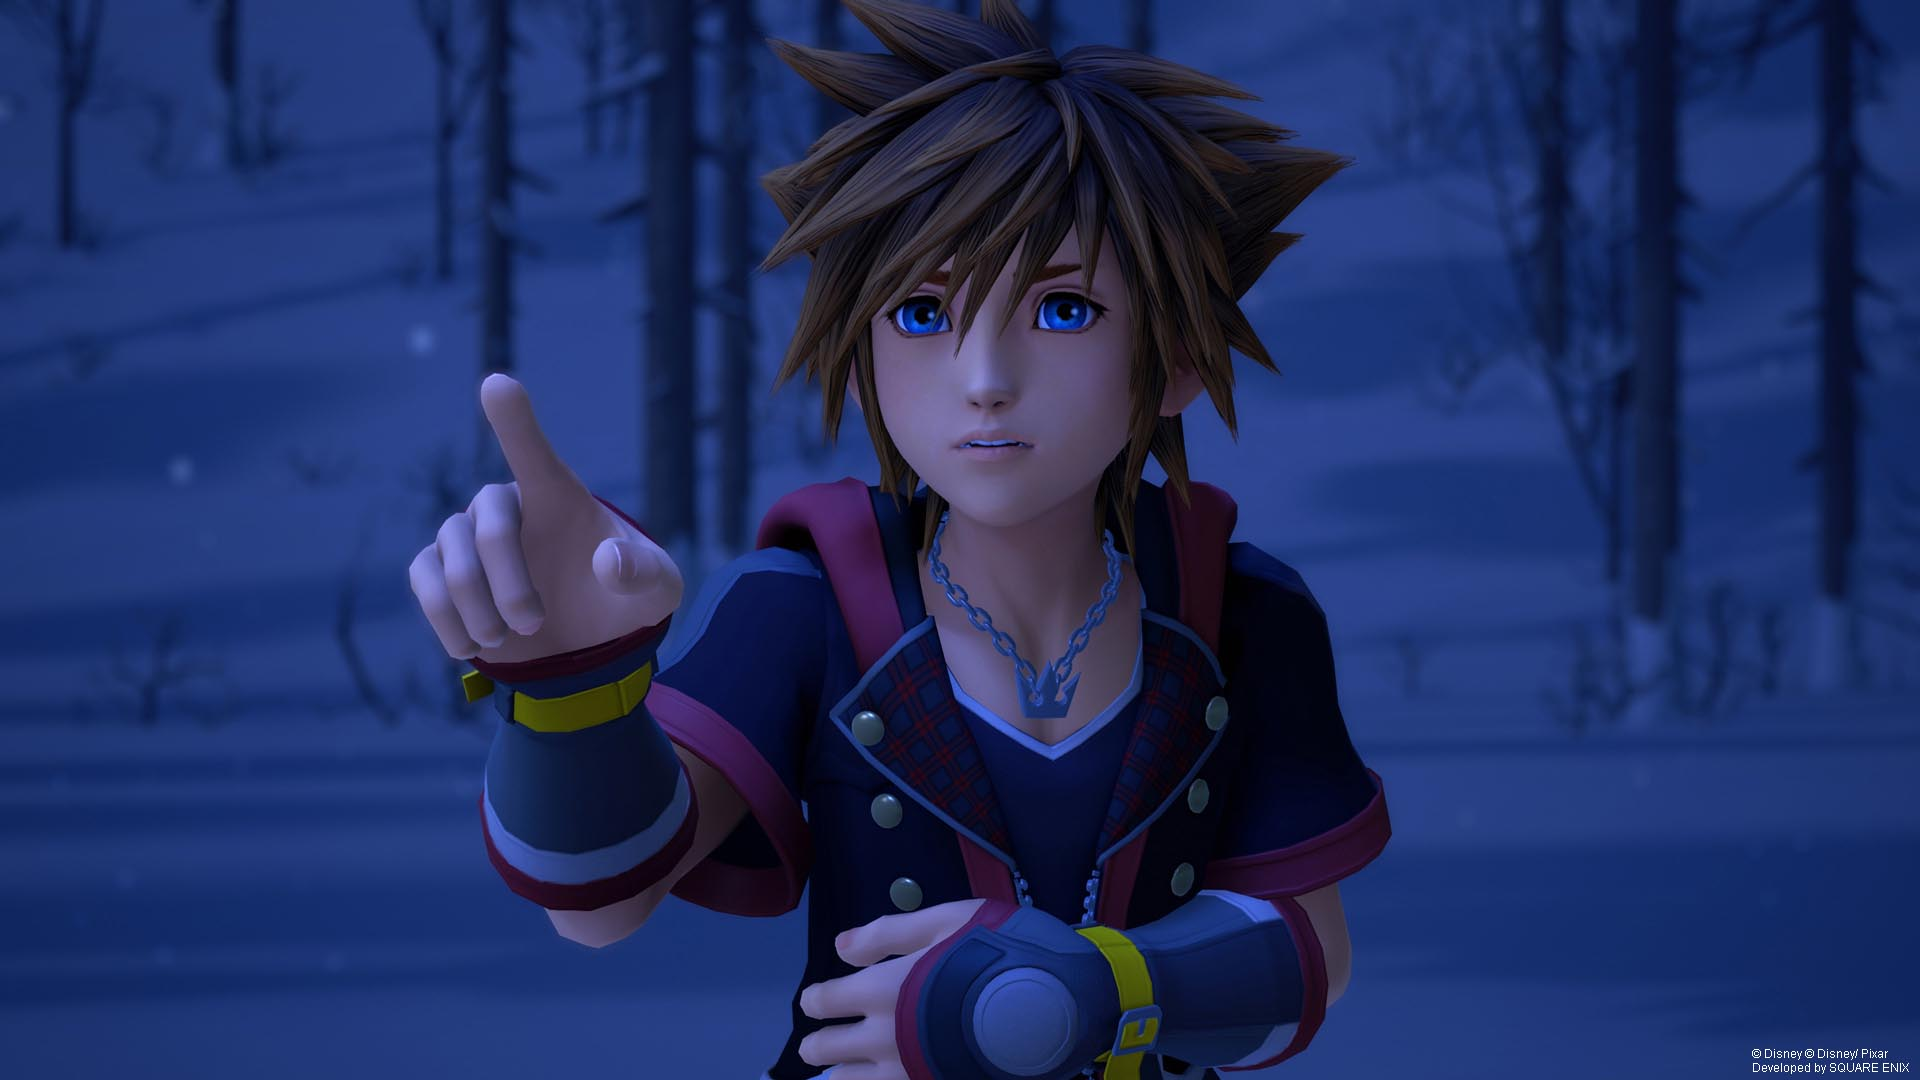 Thing You Need to Know Before Start Playing Kingdom Hearts 3